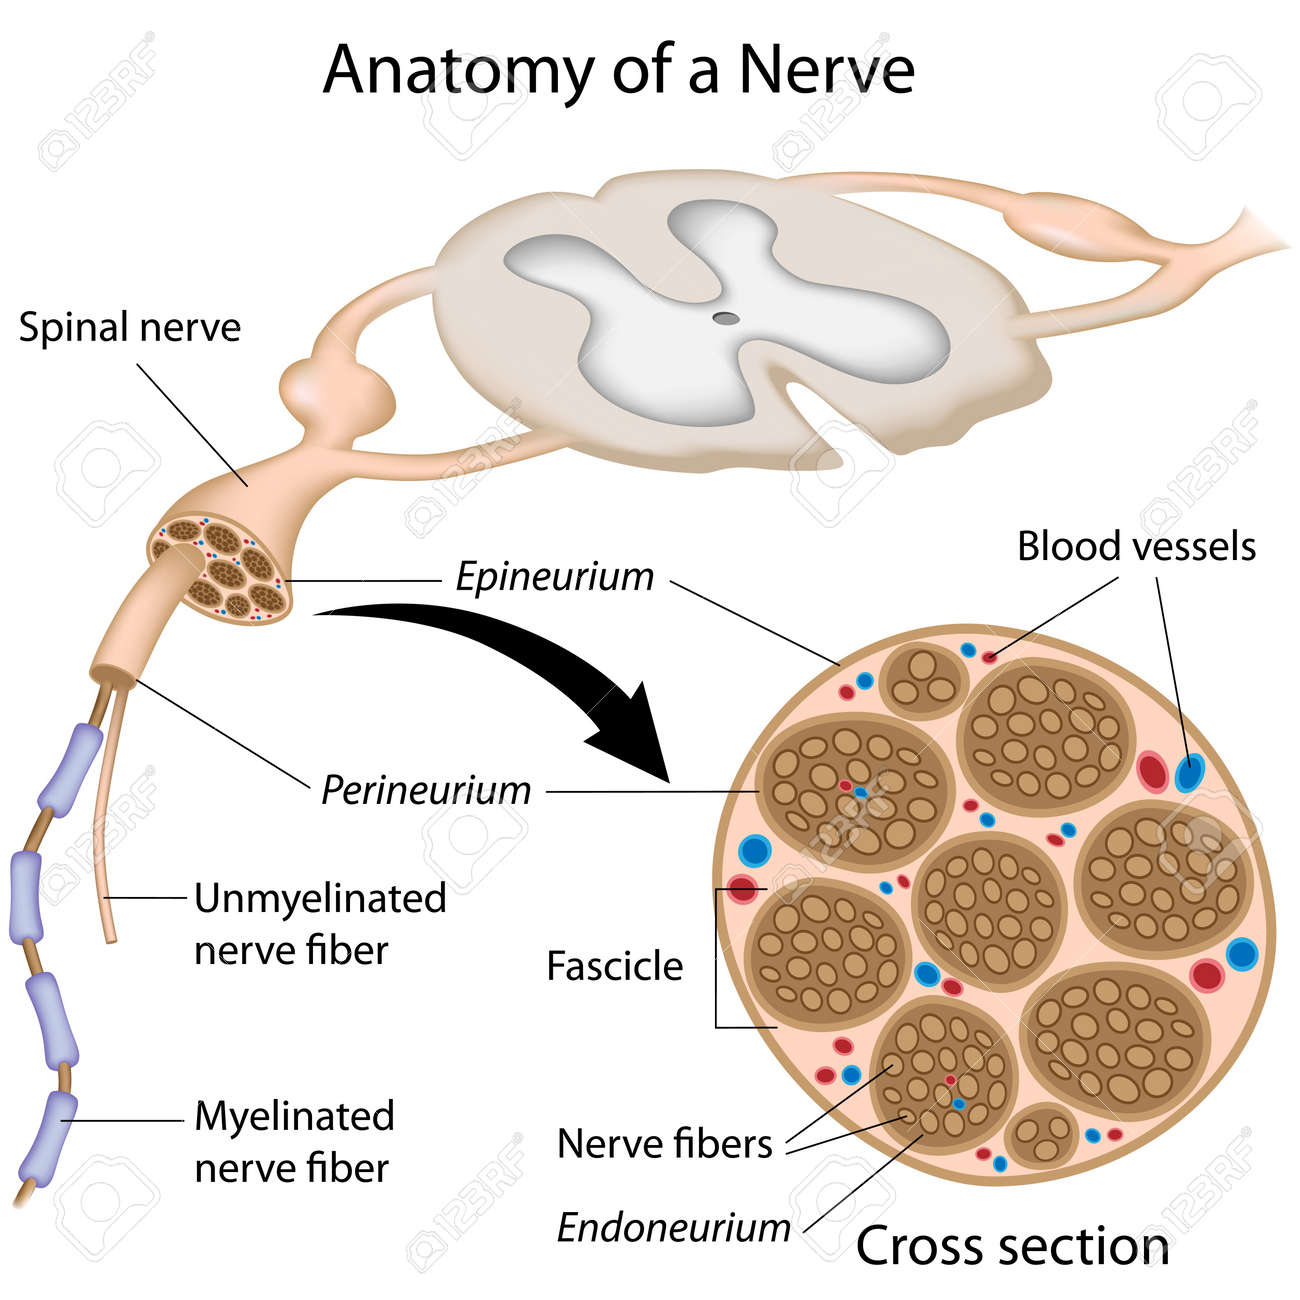 Anatomy Of A Nerve Royalty Free Cliparts, Vectors, And Stock ...